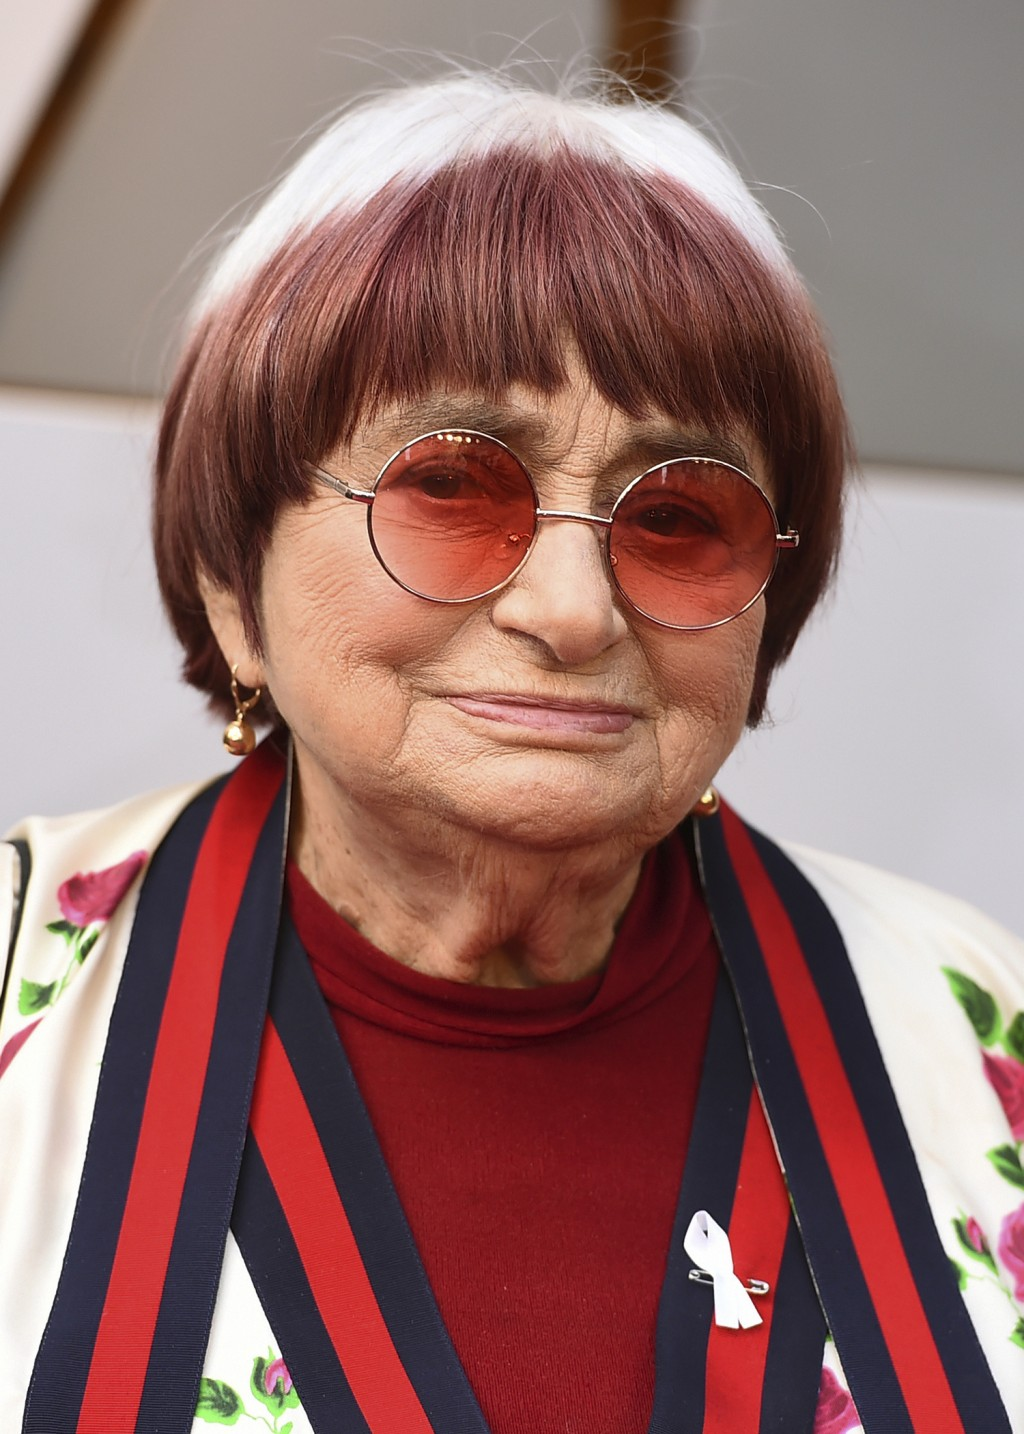 Filmmaker Agnes Varda arrives at the Oscars in Los Angeles on March 4, 2018. The French New Wave pioneer who for decades beguiled, challenged and char...